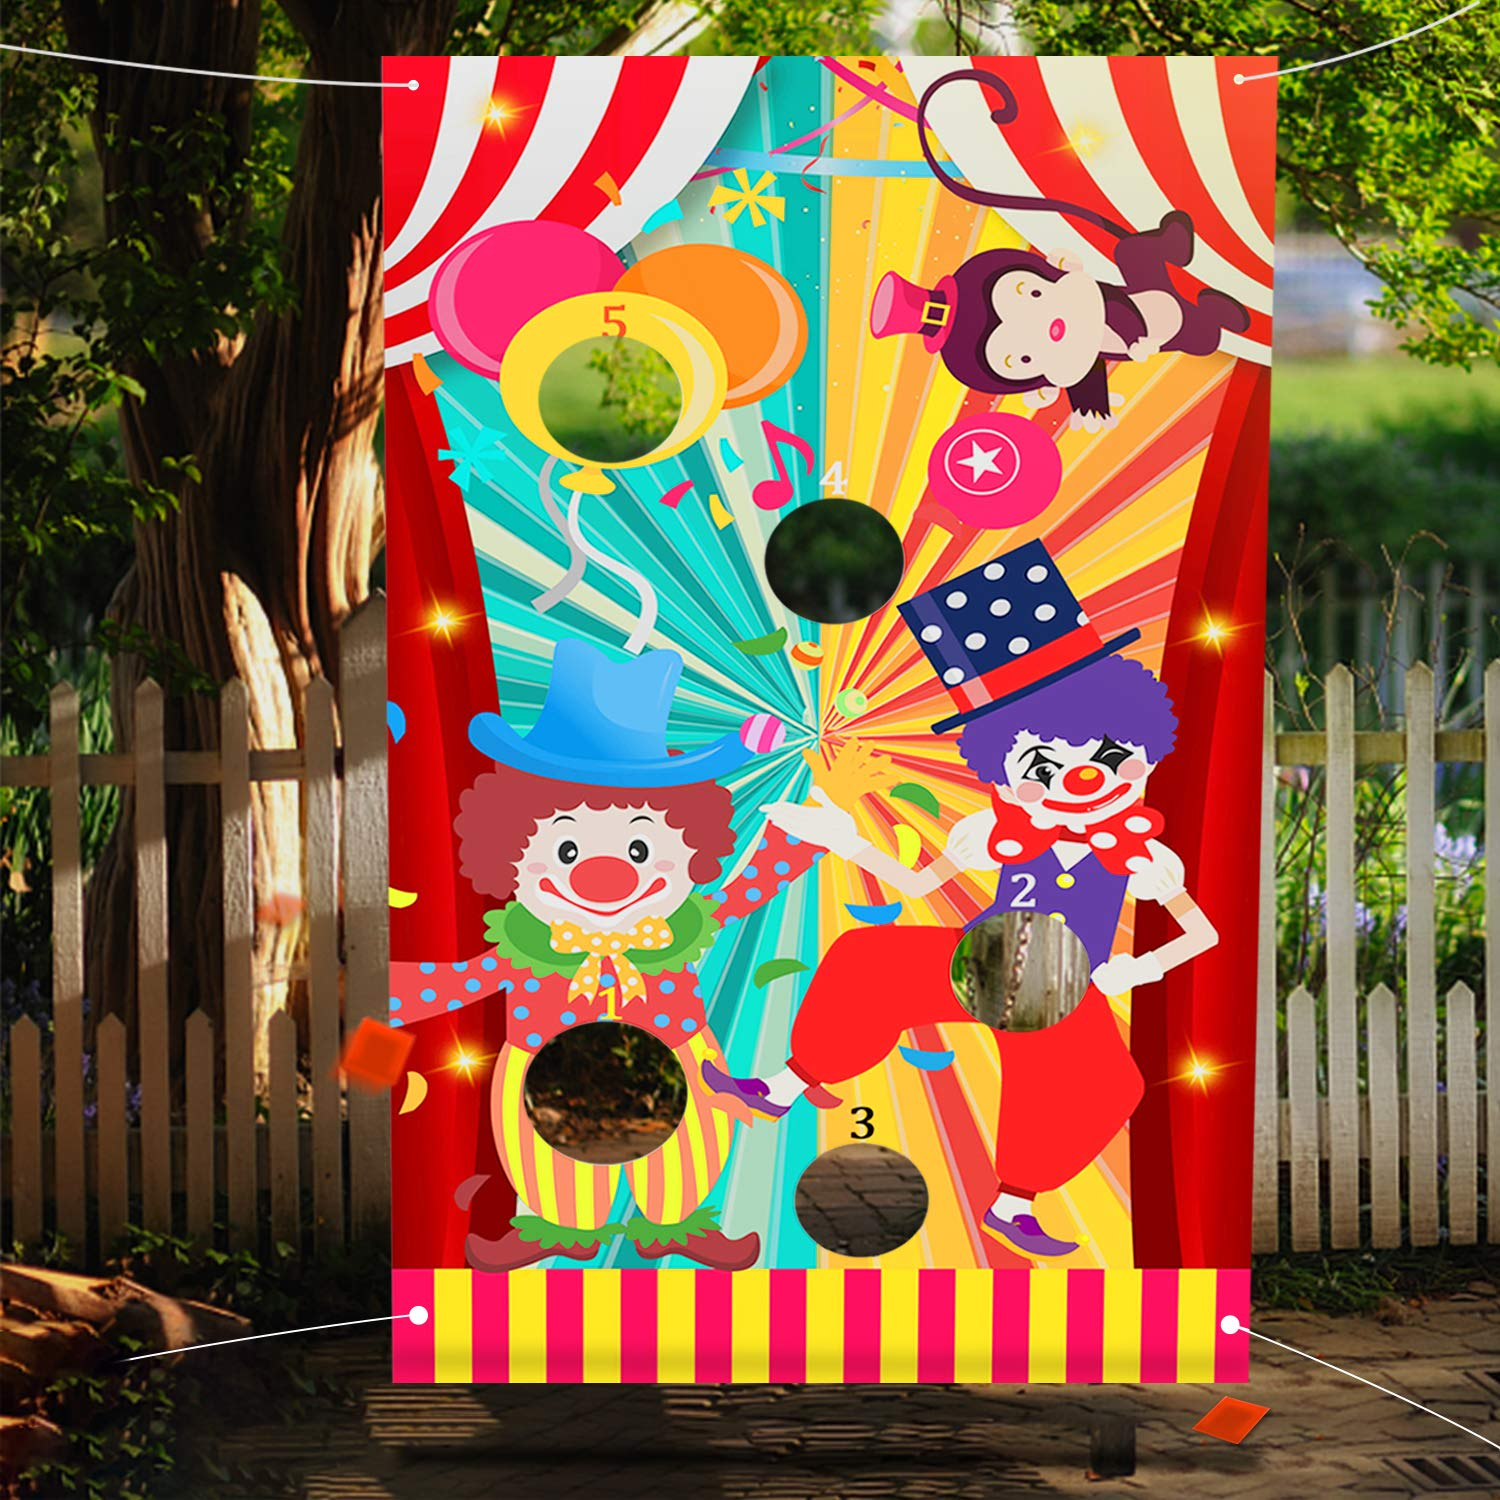 JOYIN Halloween Carnival Can Bean Bag Toss Games for Kids /& Adults Trick or Treat Decoration Home Decor Party Favors Supplies Homeschooling Backyard Game